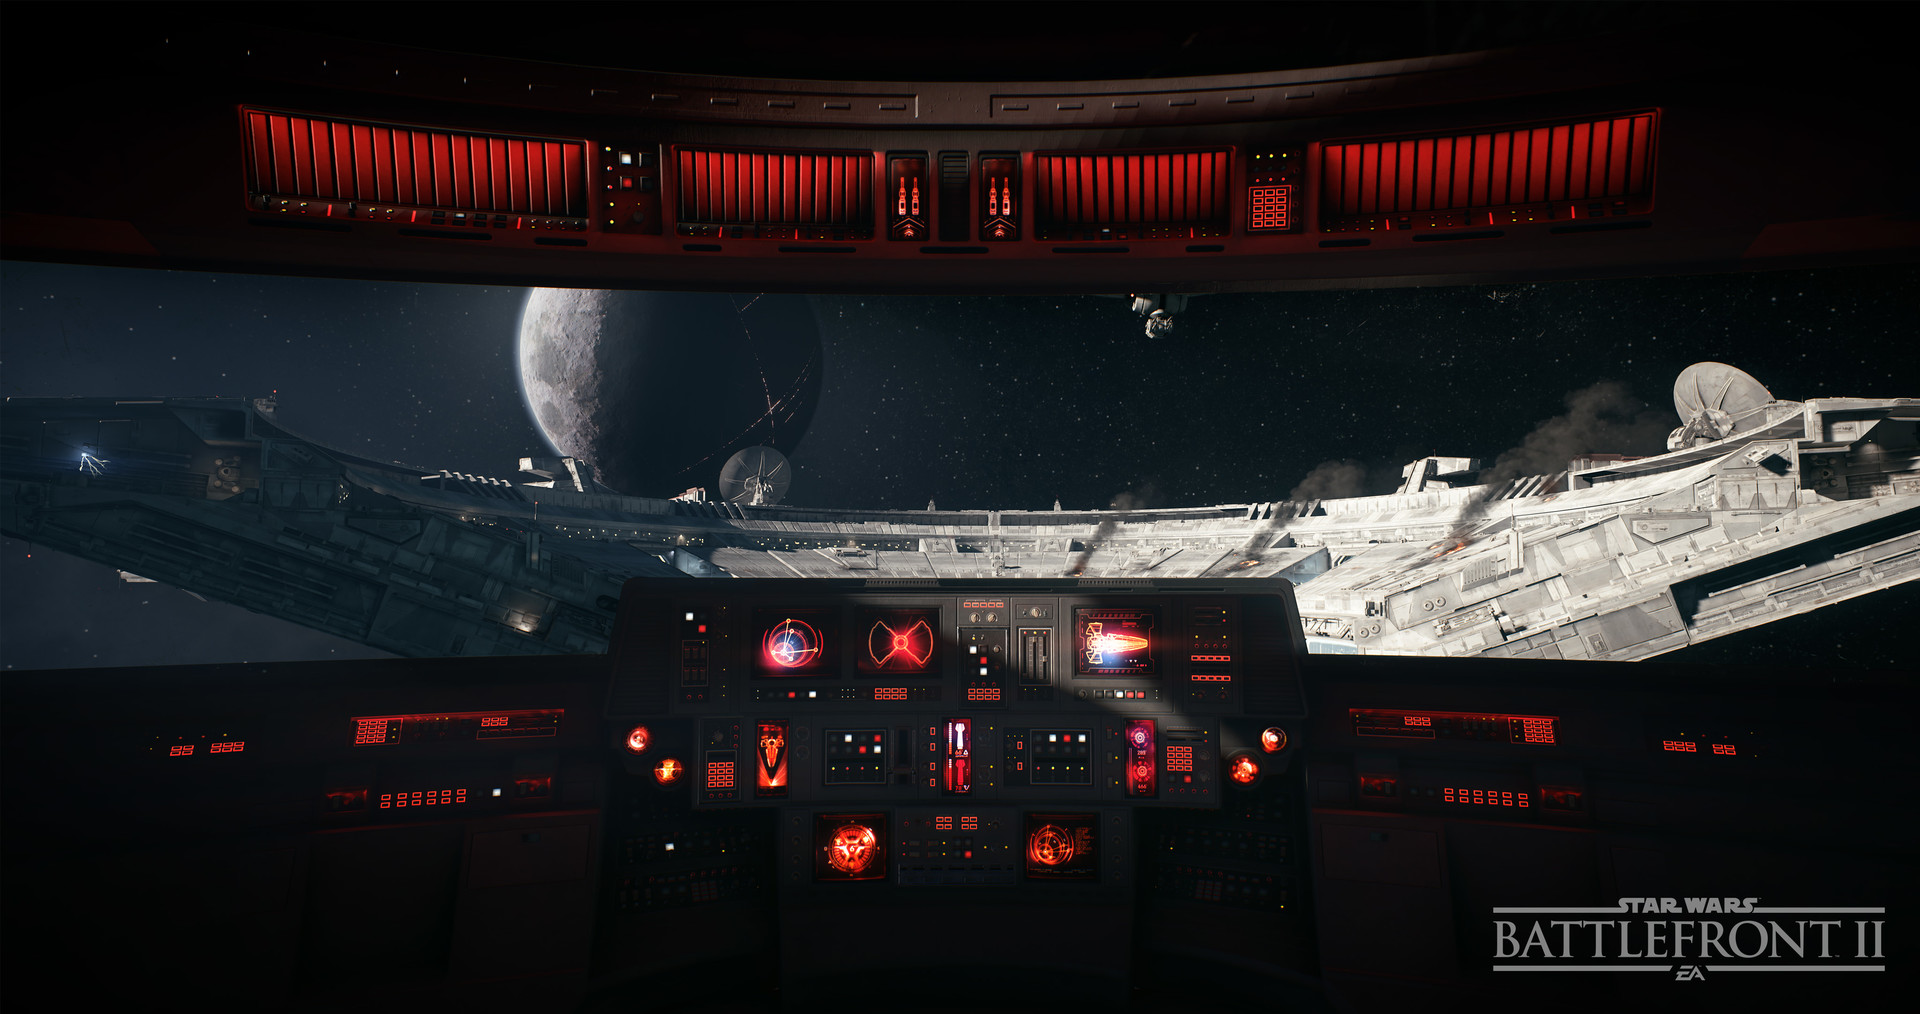 In Game view of the cockpit